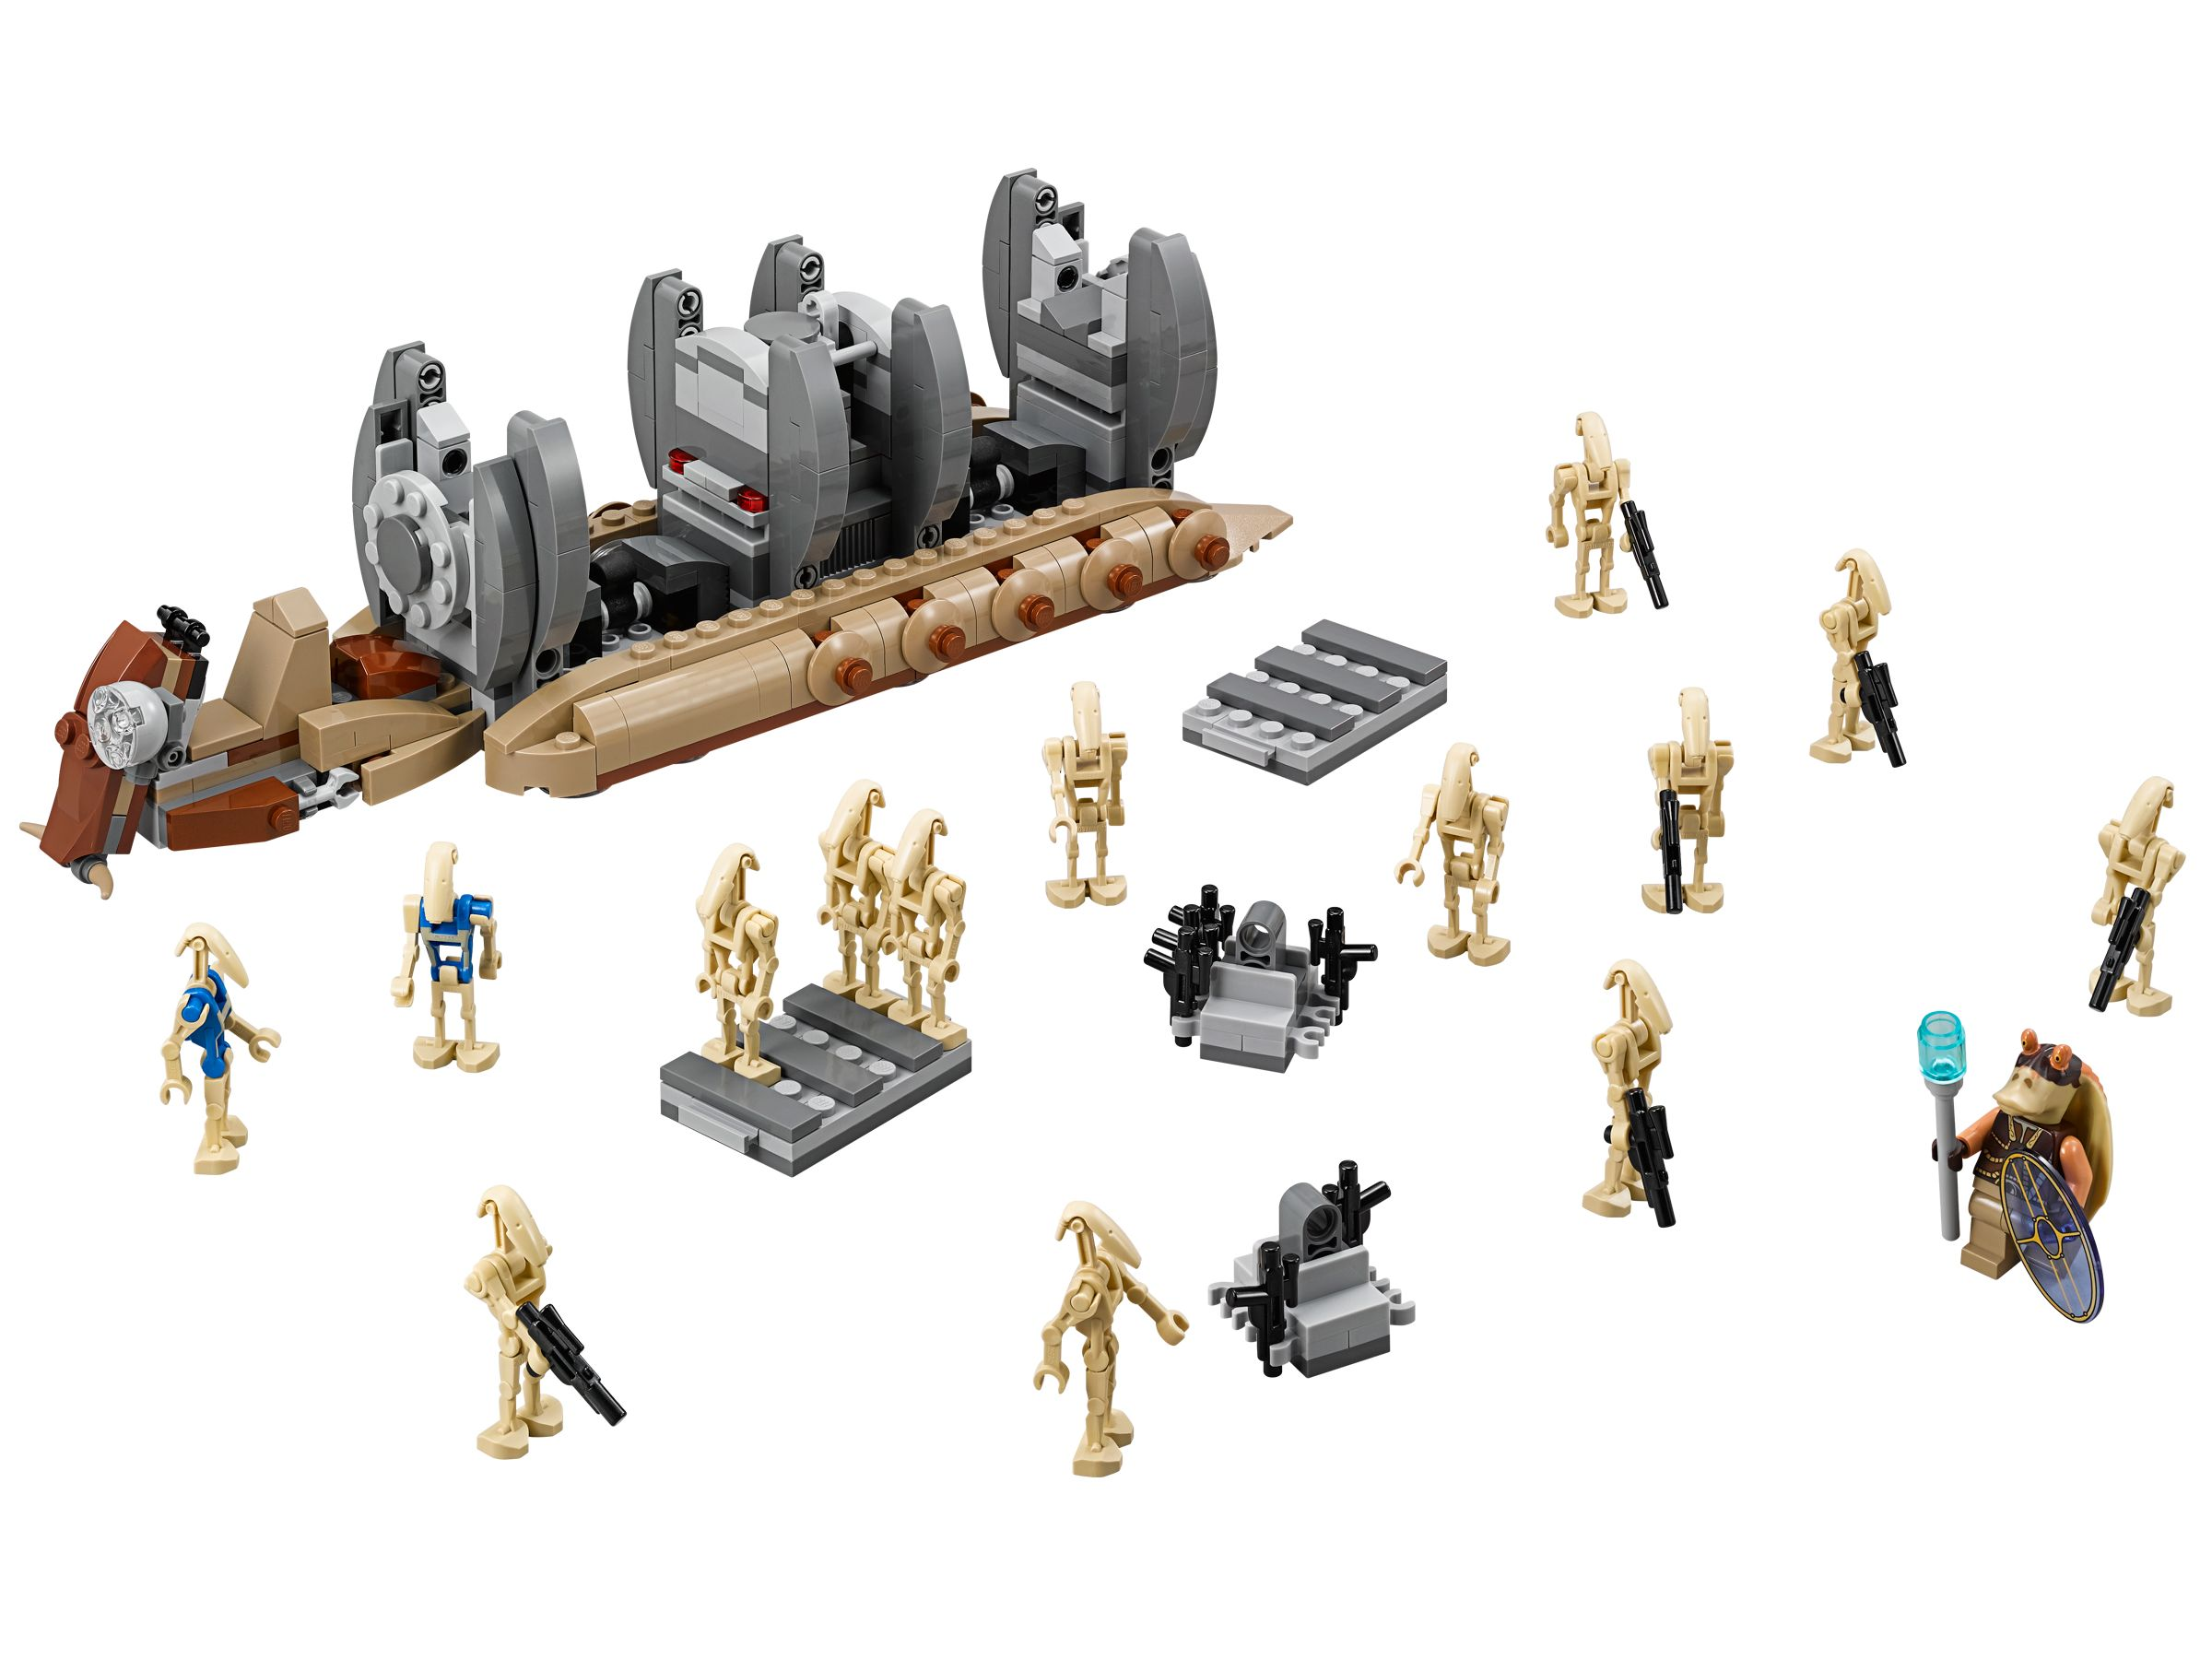 LEGO Star Wars 75086 Battle Droid™ Troop Carrier LEGO_75086.jpg